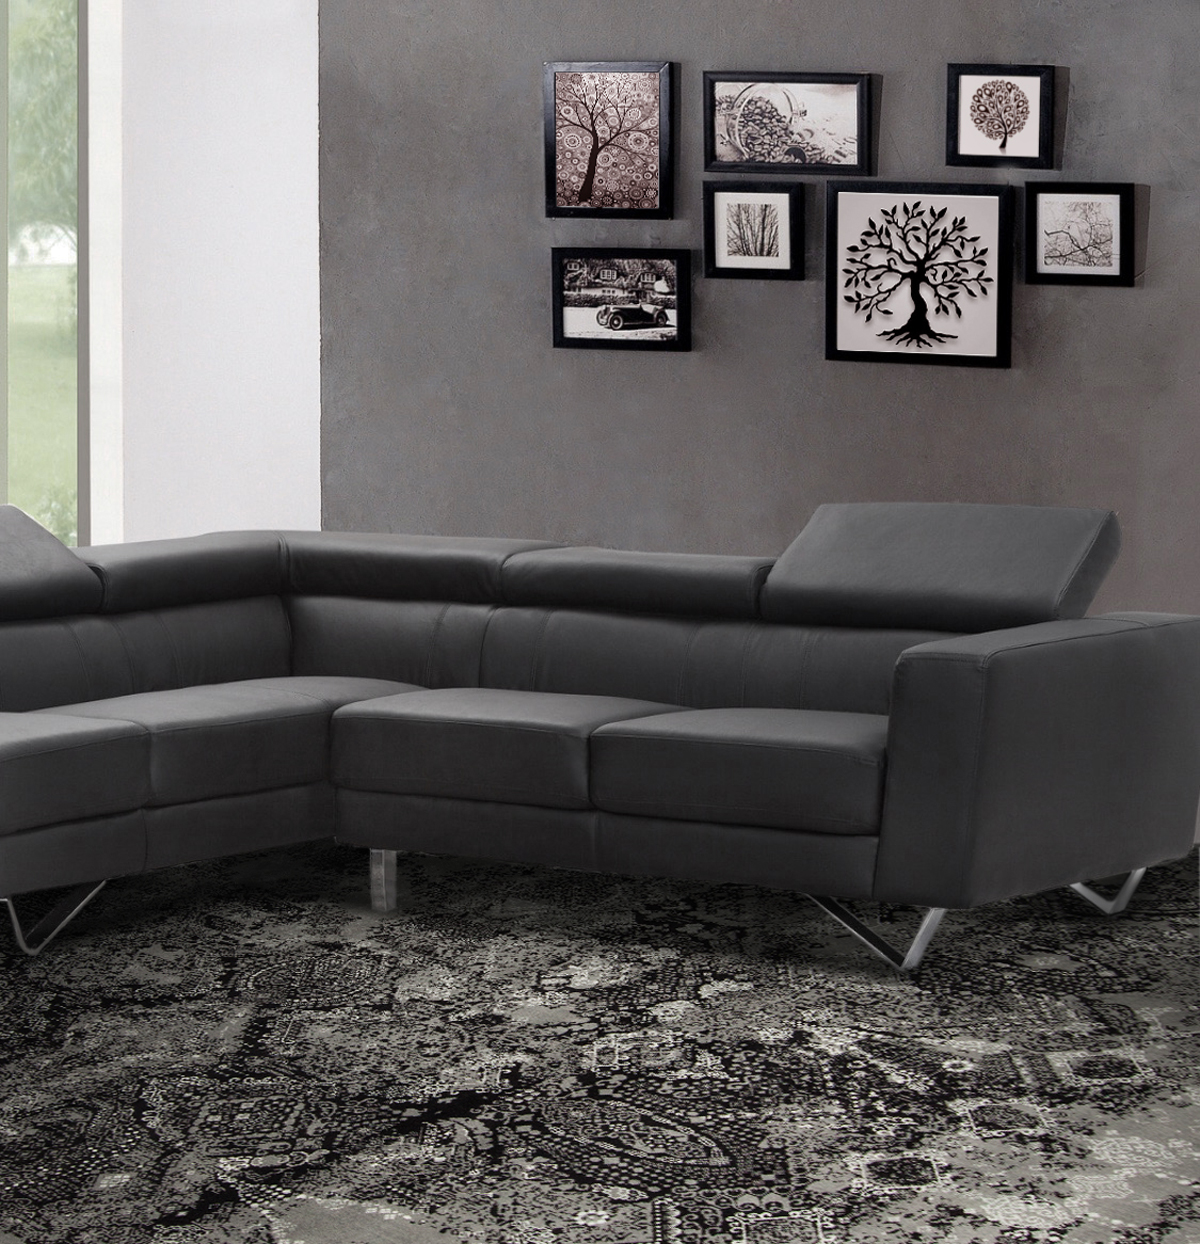 living room with gray sofa and black and white rug